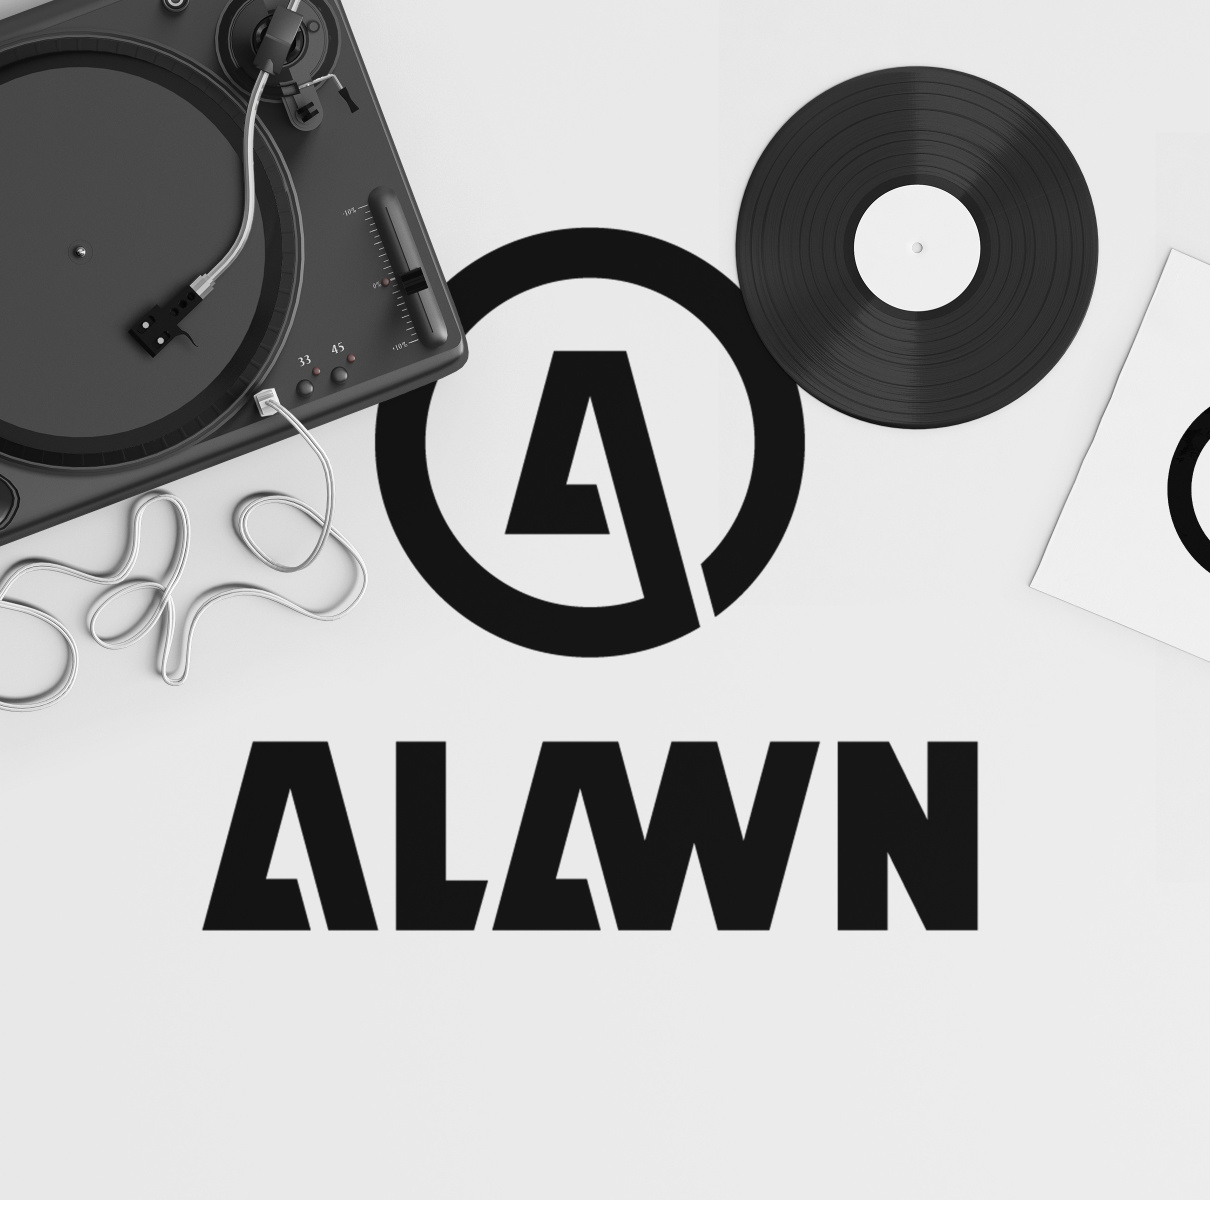 Dj logos images images galleries with for Home decor logo 99design